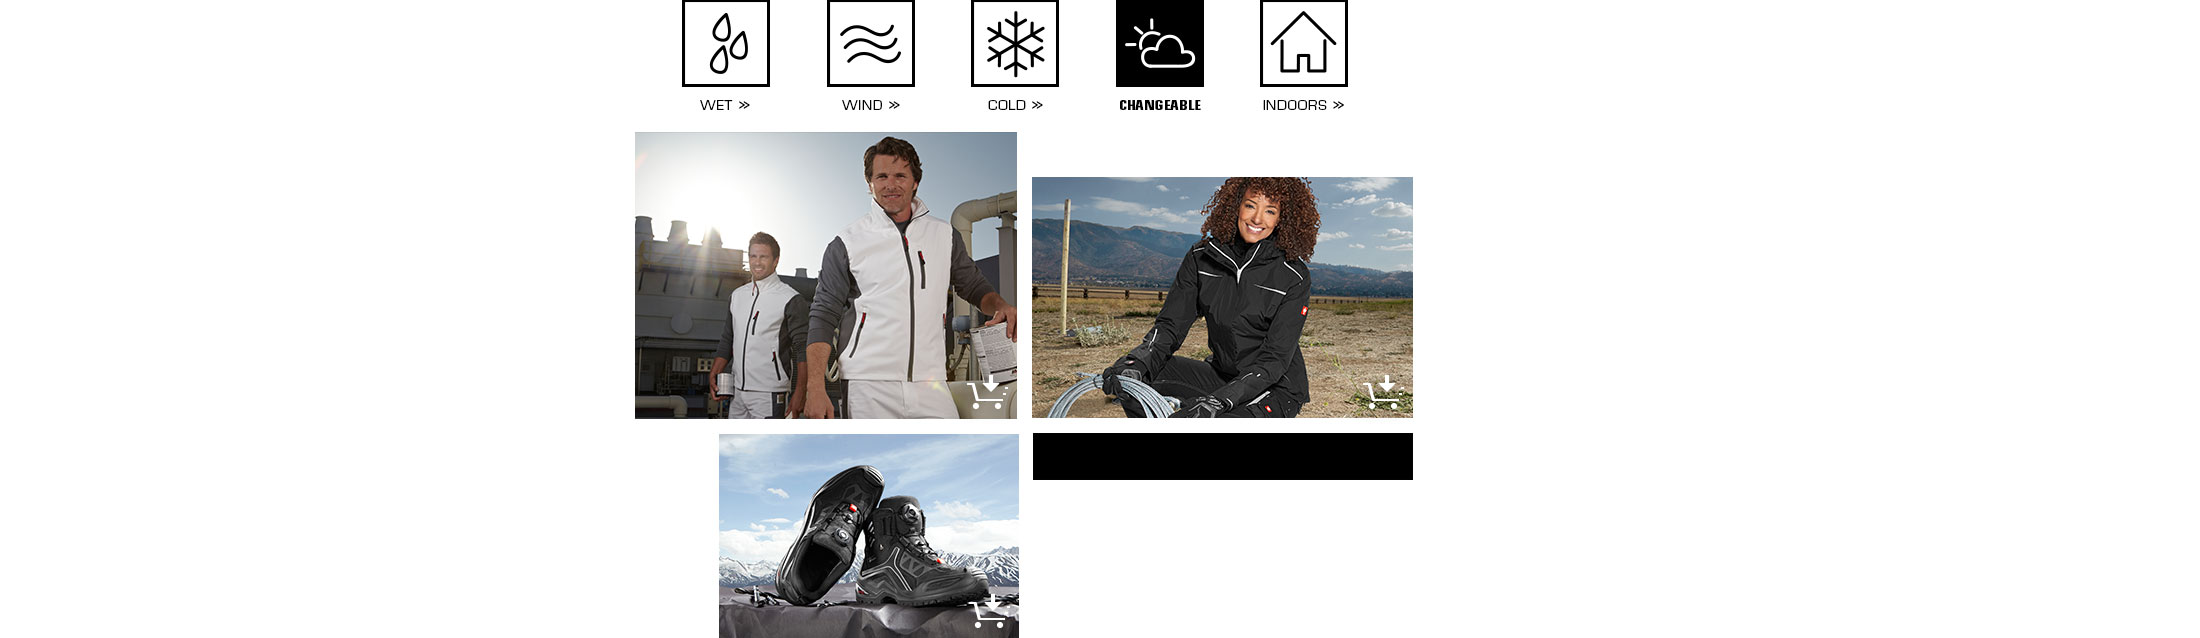 engelbert strauss workwear protects in changeable weather conditions